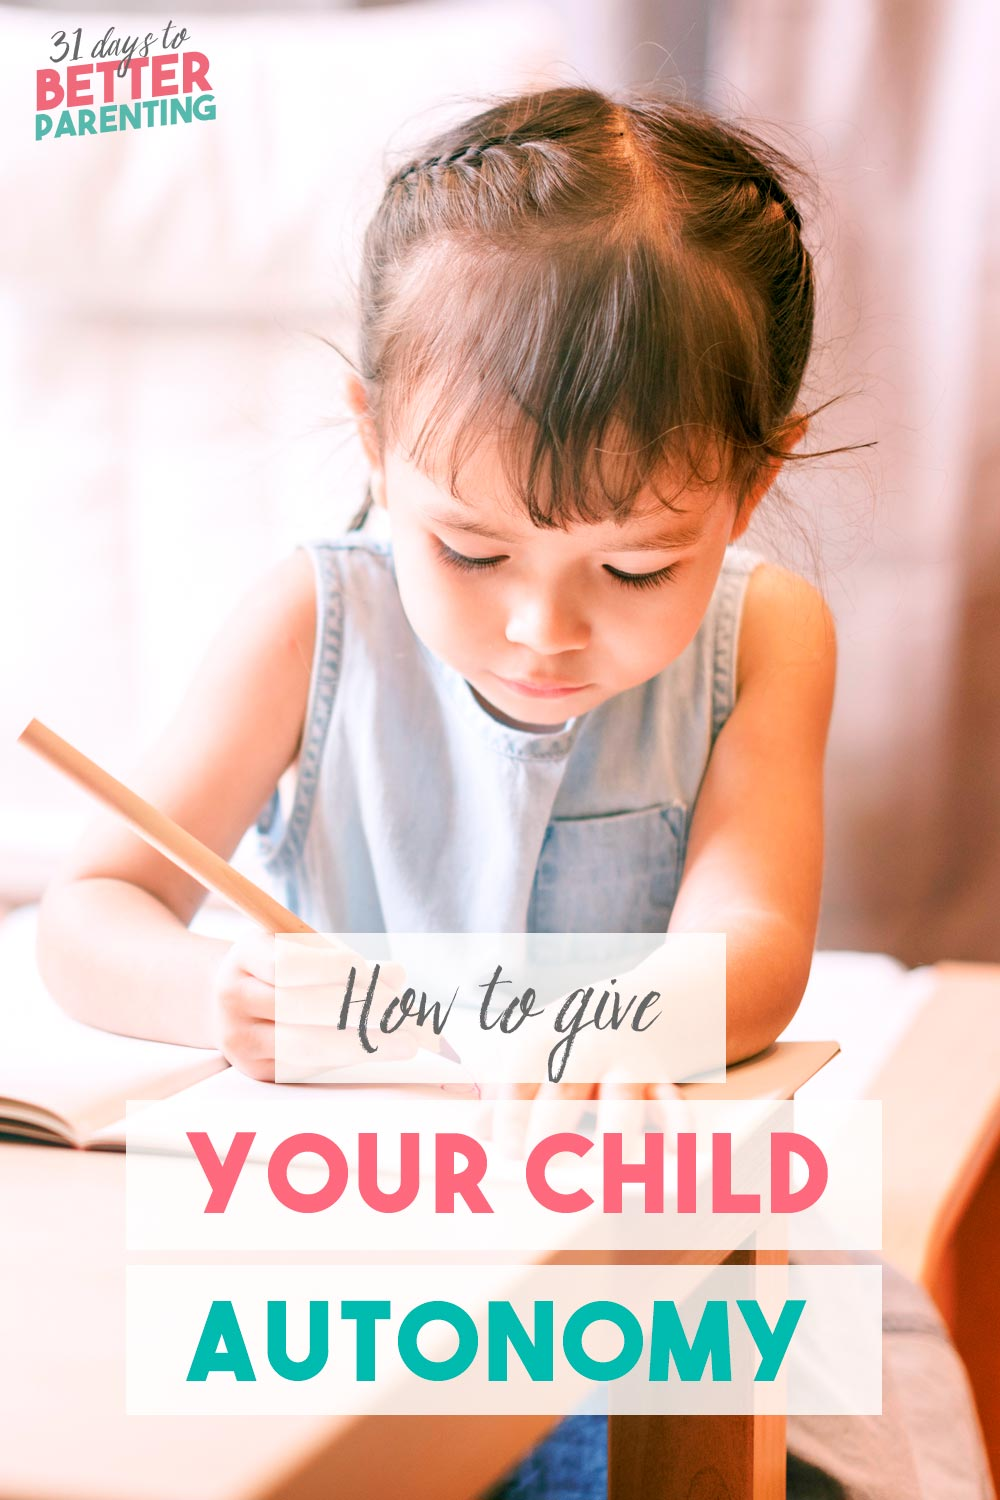 Teaching autonomy in children is important to encourage a love of learning and responsibility. Learn how to raise an autonomous child with these tips.